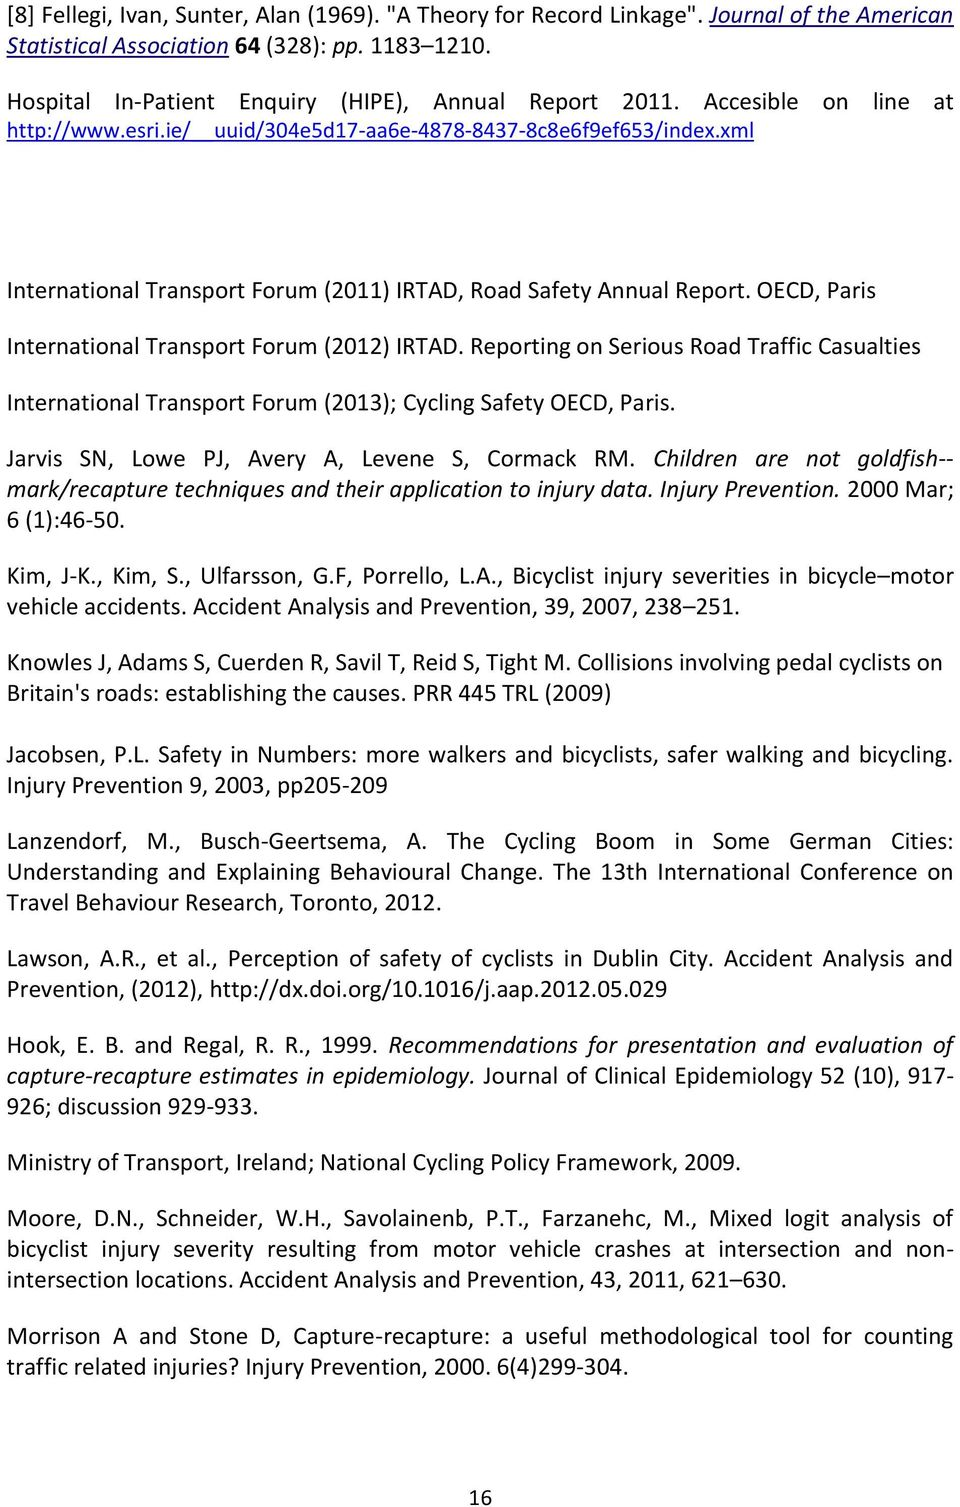 OECD, Paris International Transport Forum (2012) IRTAD. Reporting on Serious Road Traffic Casualties International Transport Forum (2013); Cycling Safety OECD, Paris.